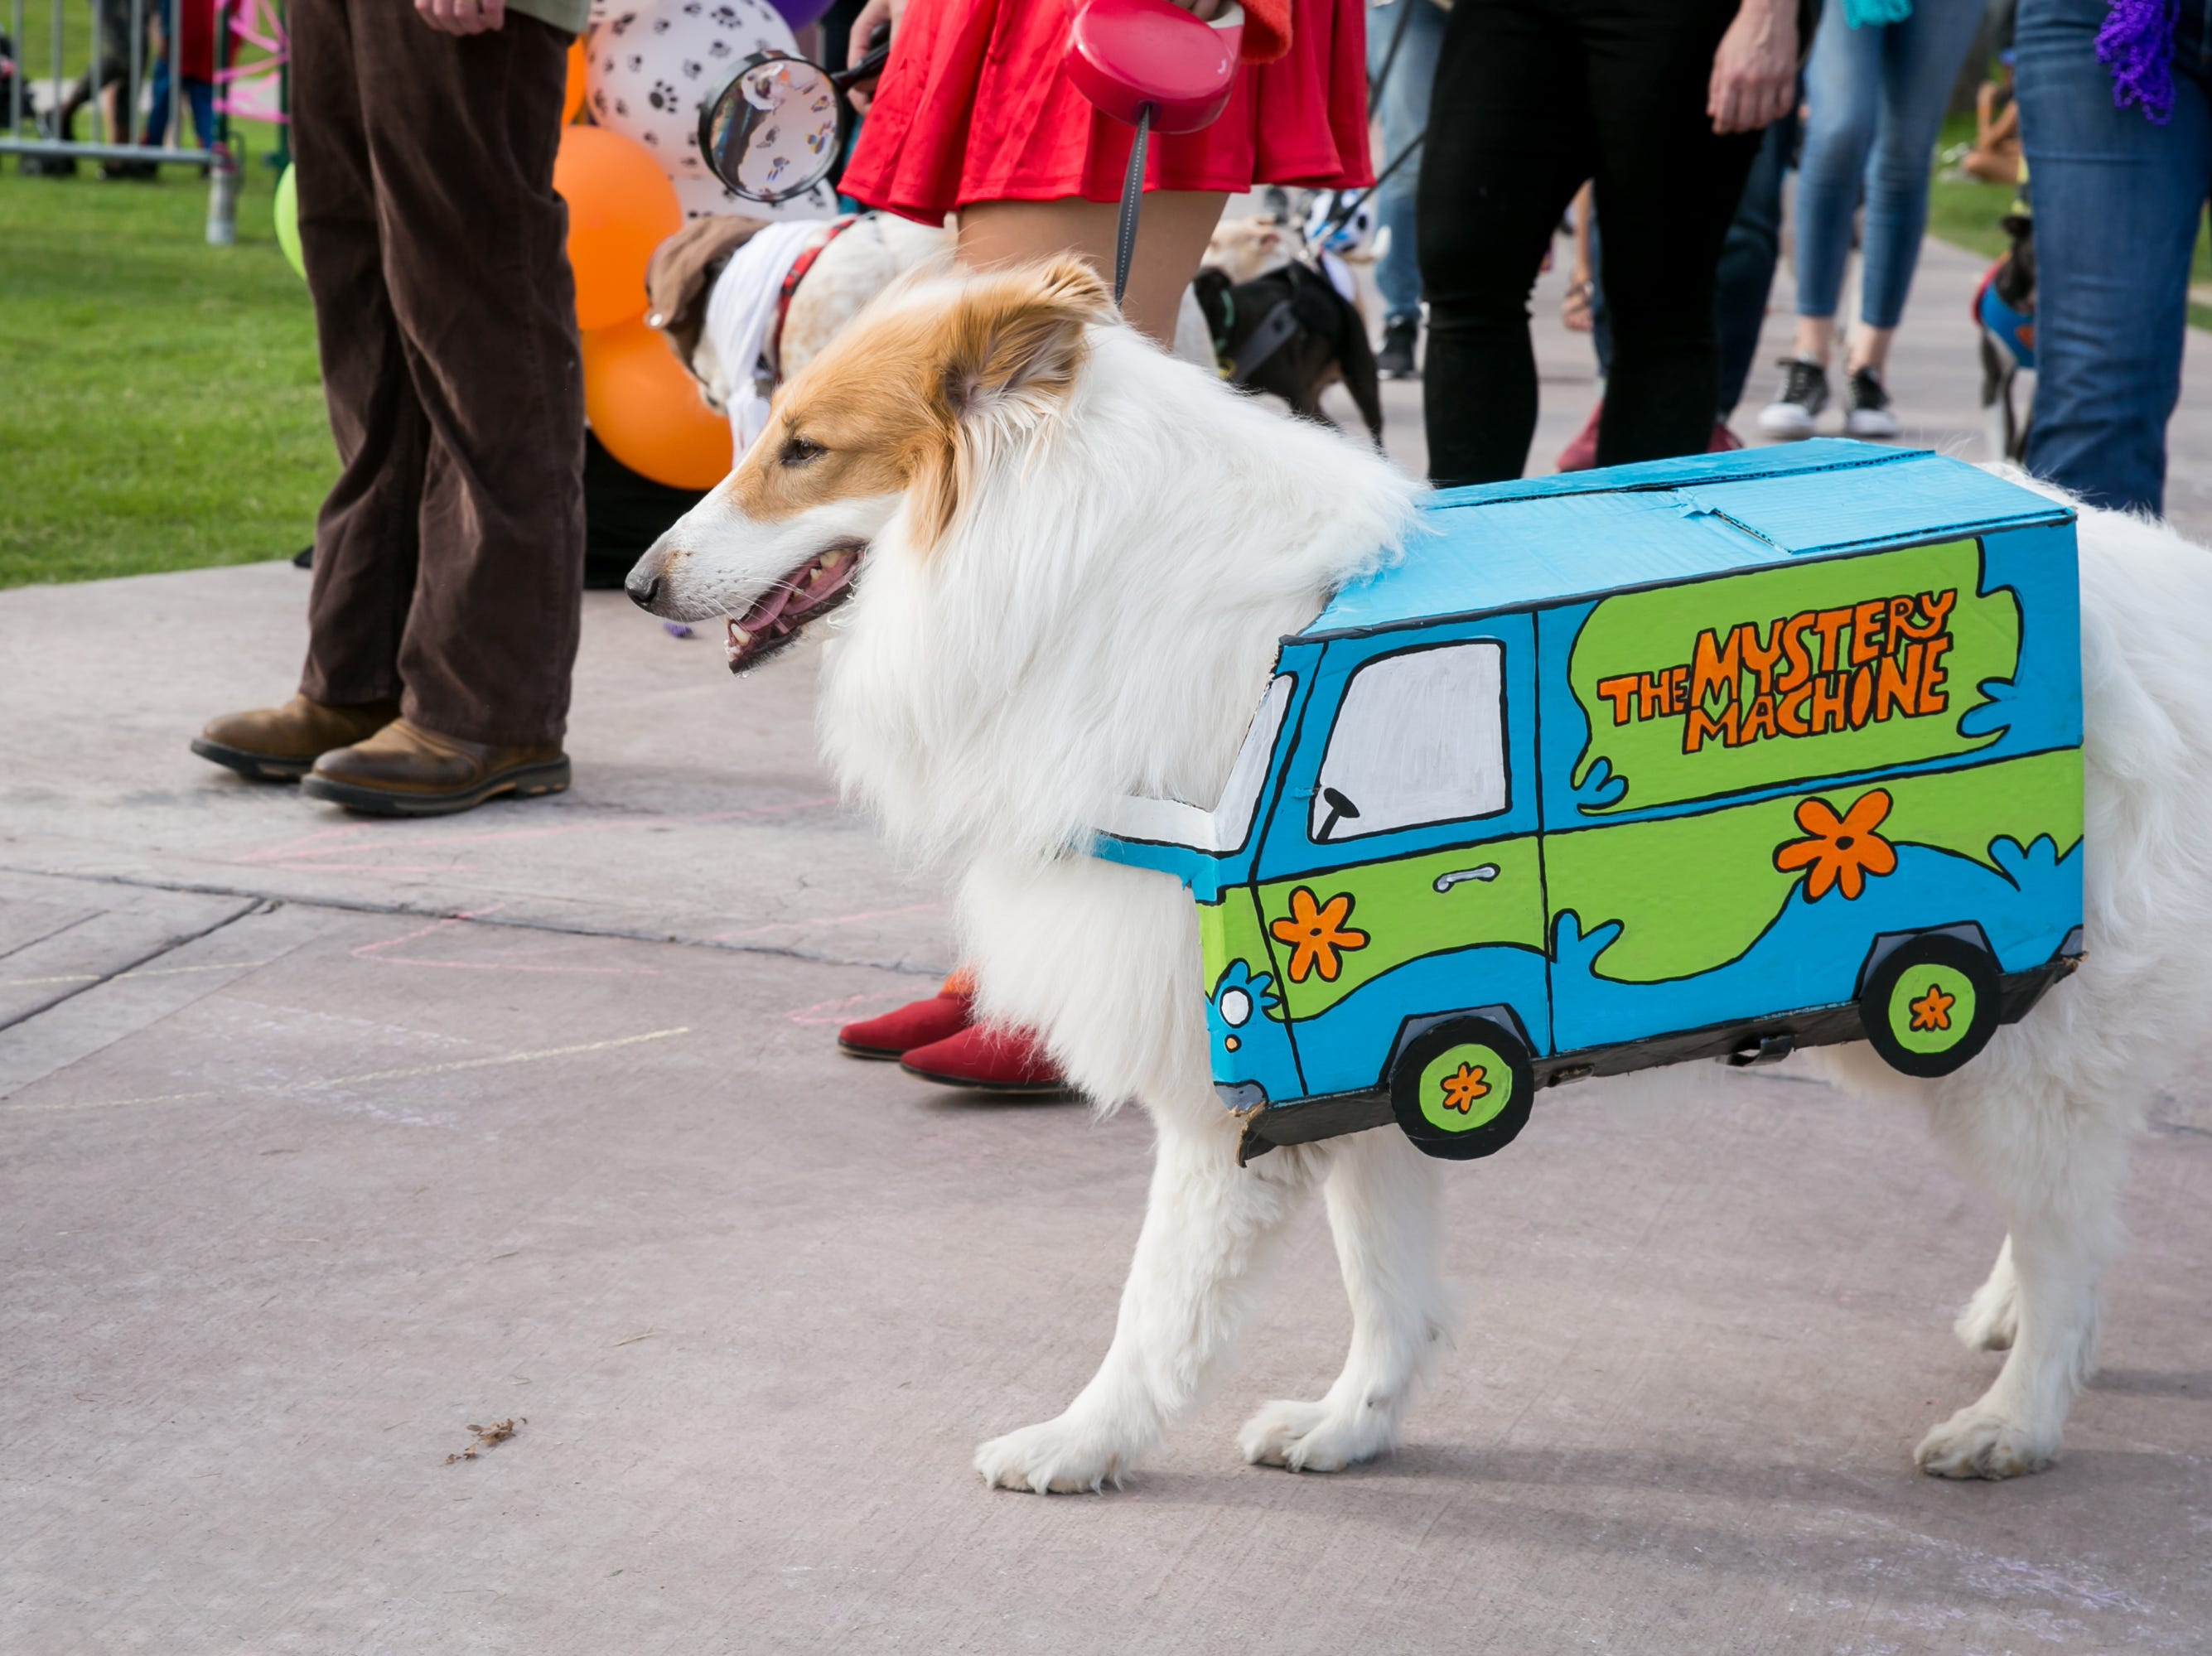 The Mystery Machine was the life force behind the Scooby Doo crew during Howl-o-Ween at Hance Park on Sunday, October 28, 2018.